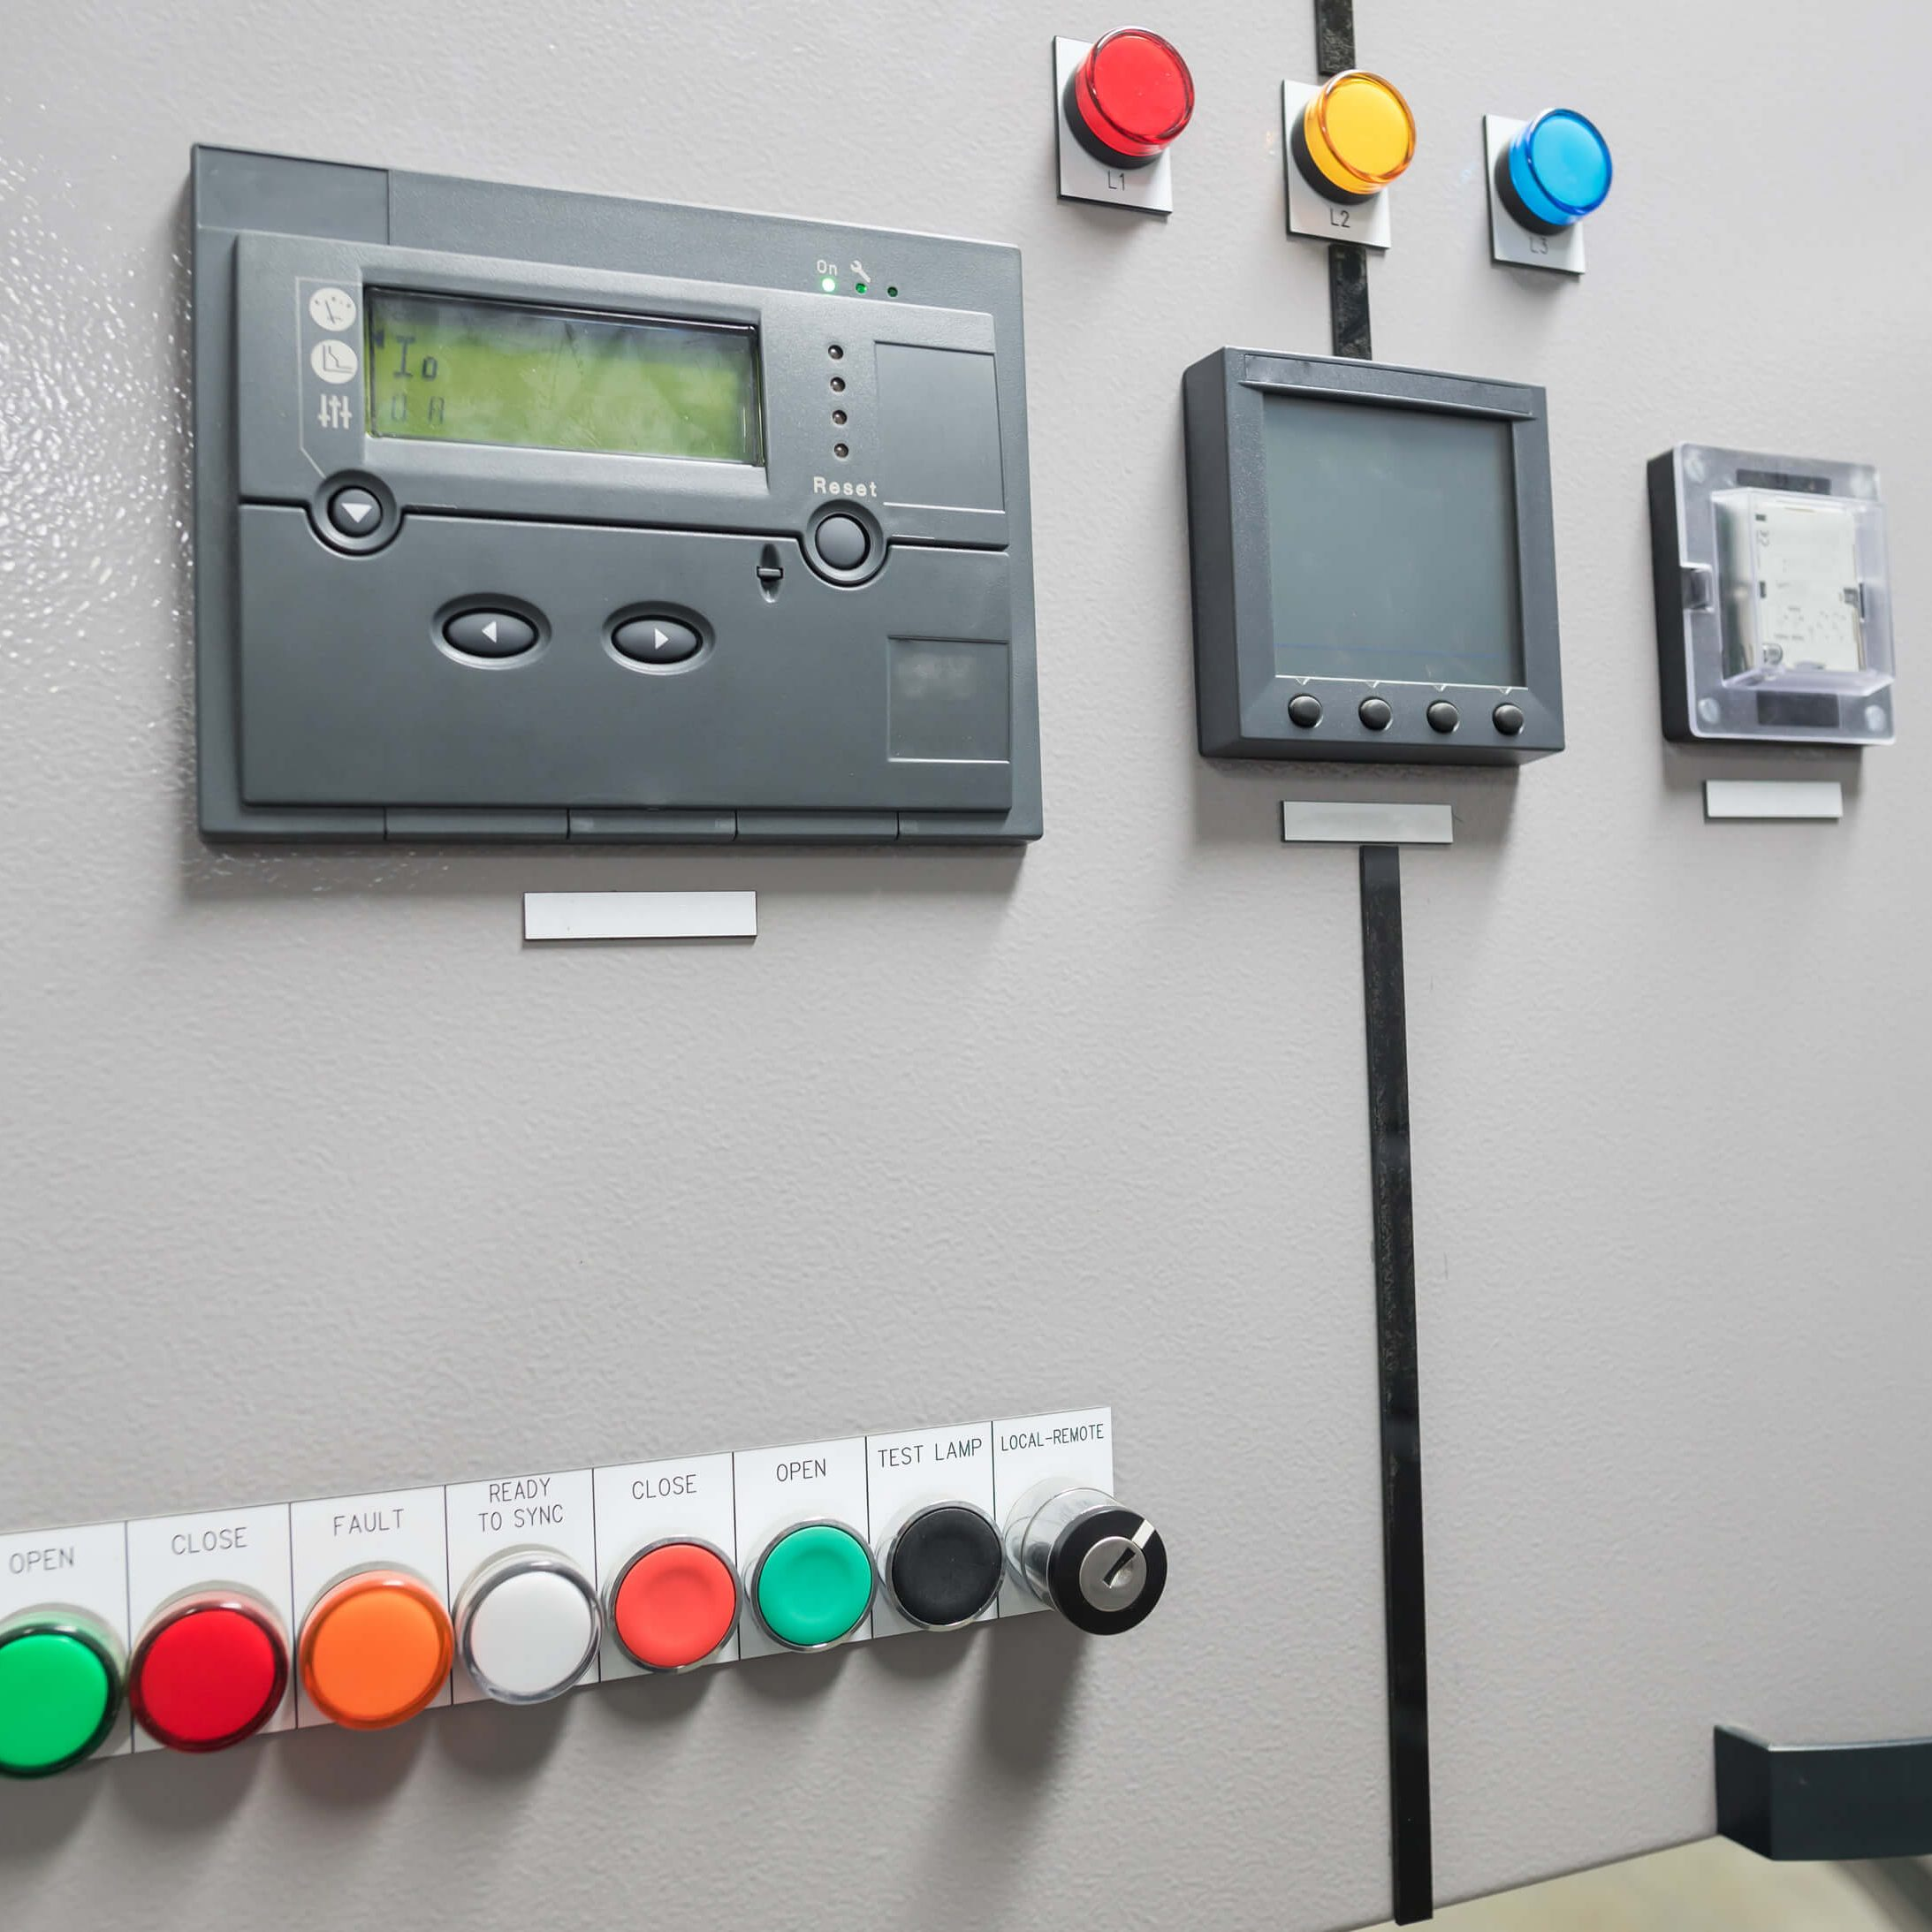 stock-photo-electrical-switchgear-industrial-electrical-switch-panel-553801621